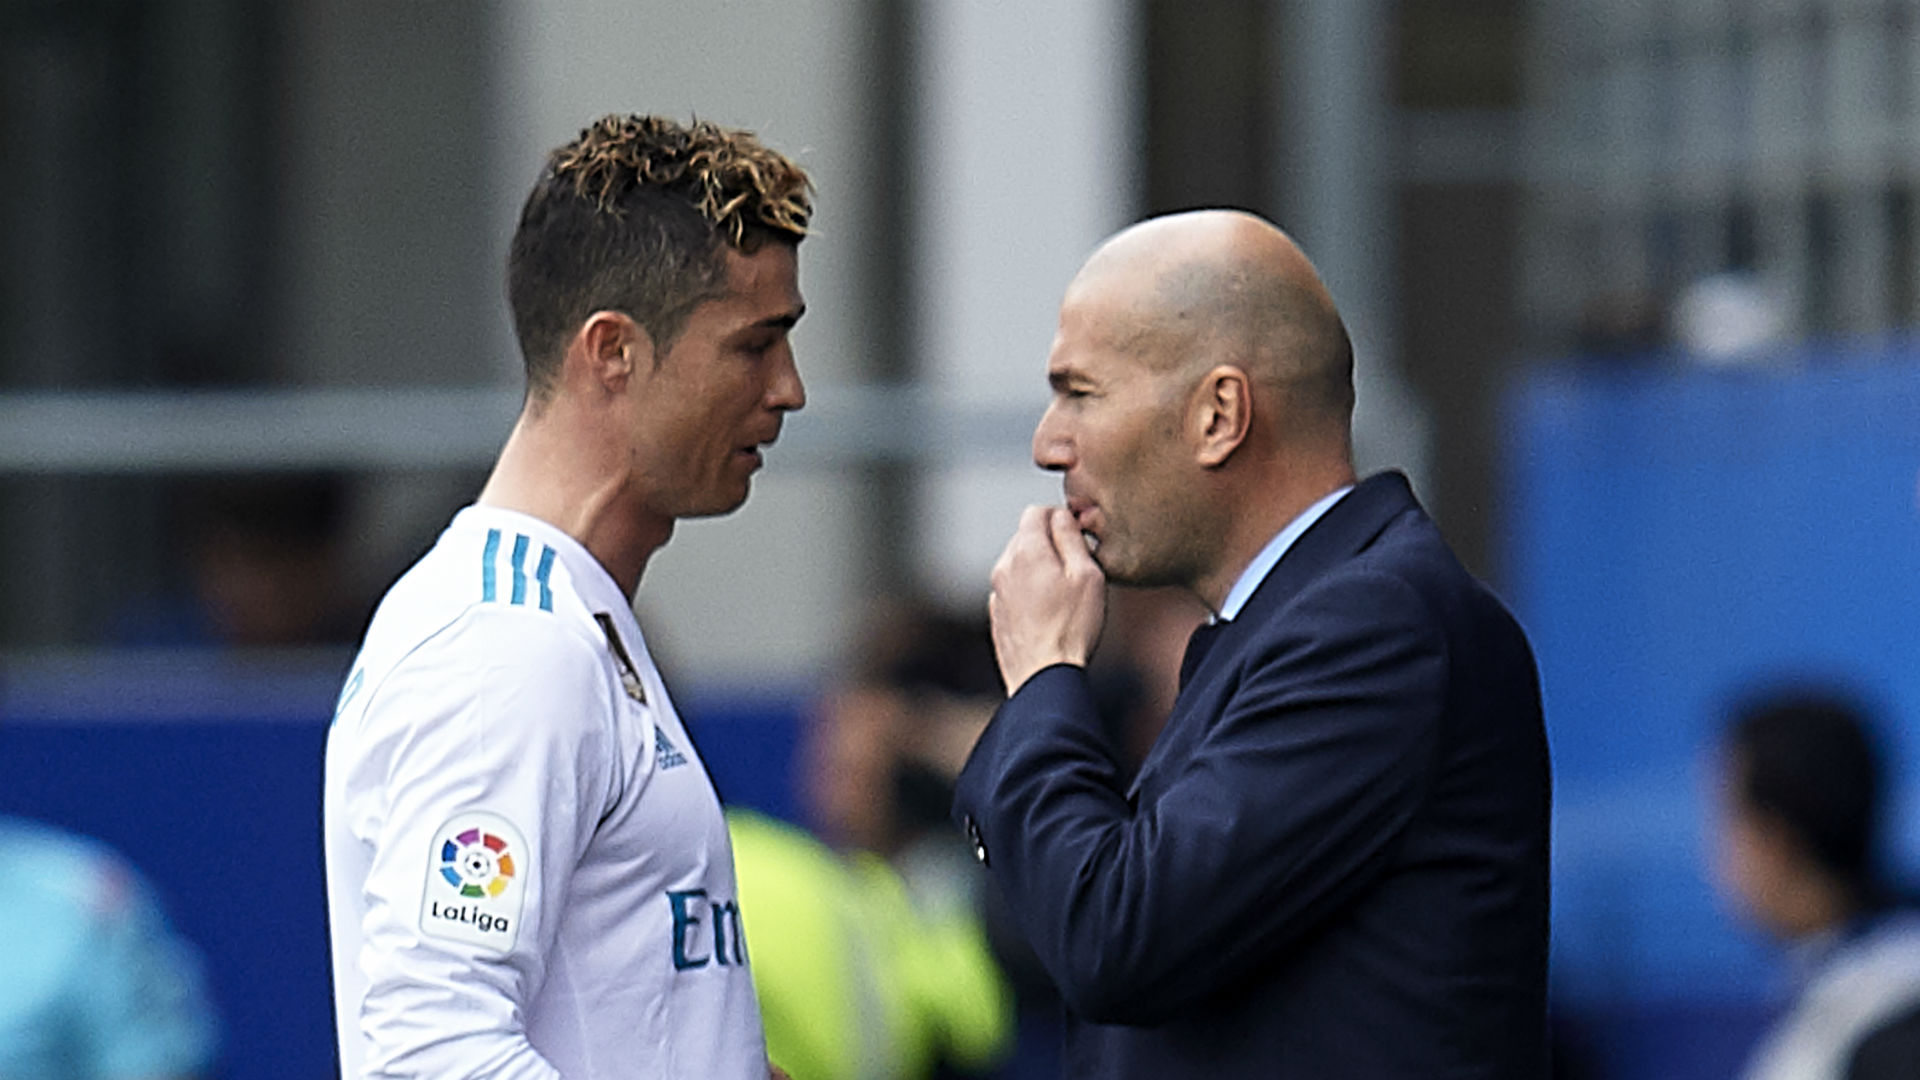 Ex-Real Madrid chief reveals why Zinedine Zidane left the club